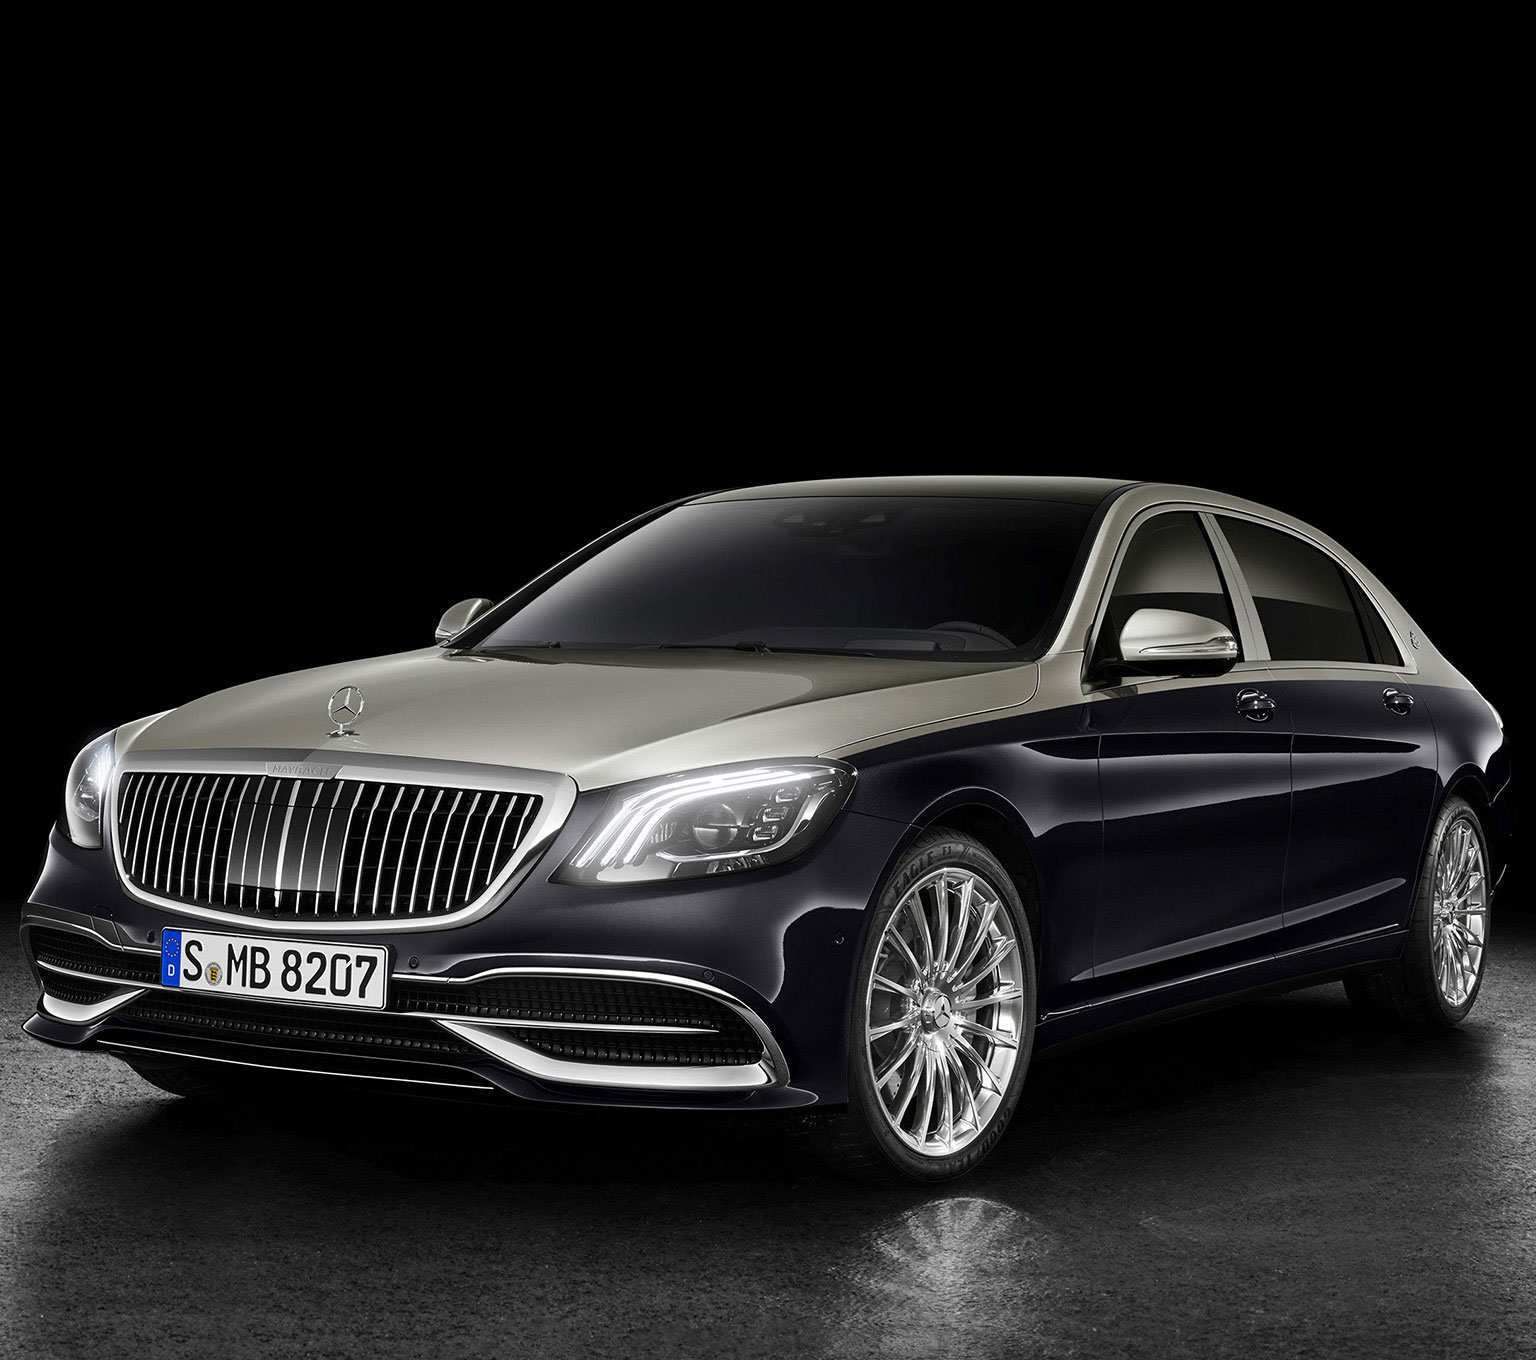 64 All New 2019 Mercedes Benz S Class Redesign And Review